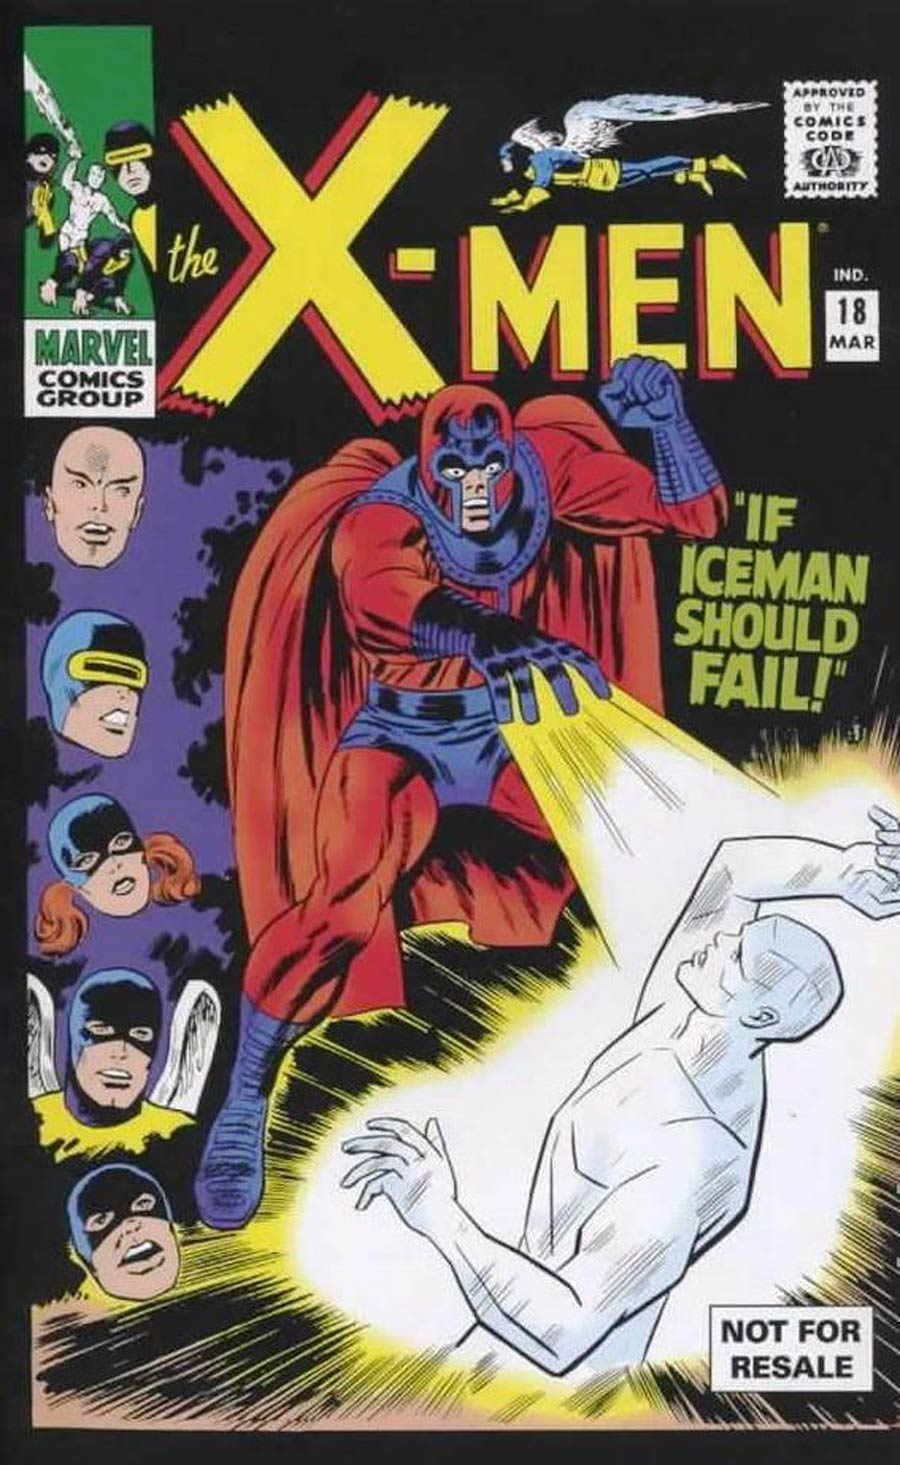 X-Men Vol 1 #18 Cover B Toy Reprint